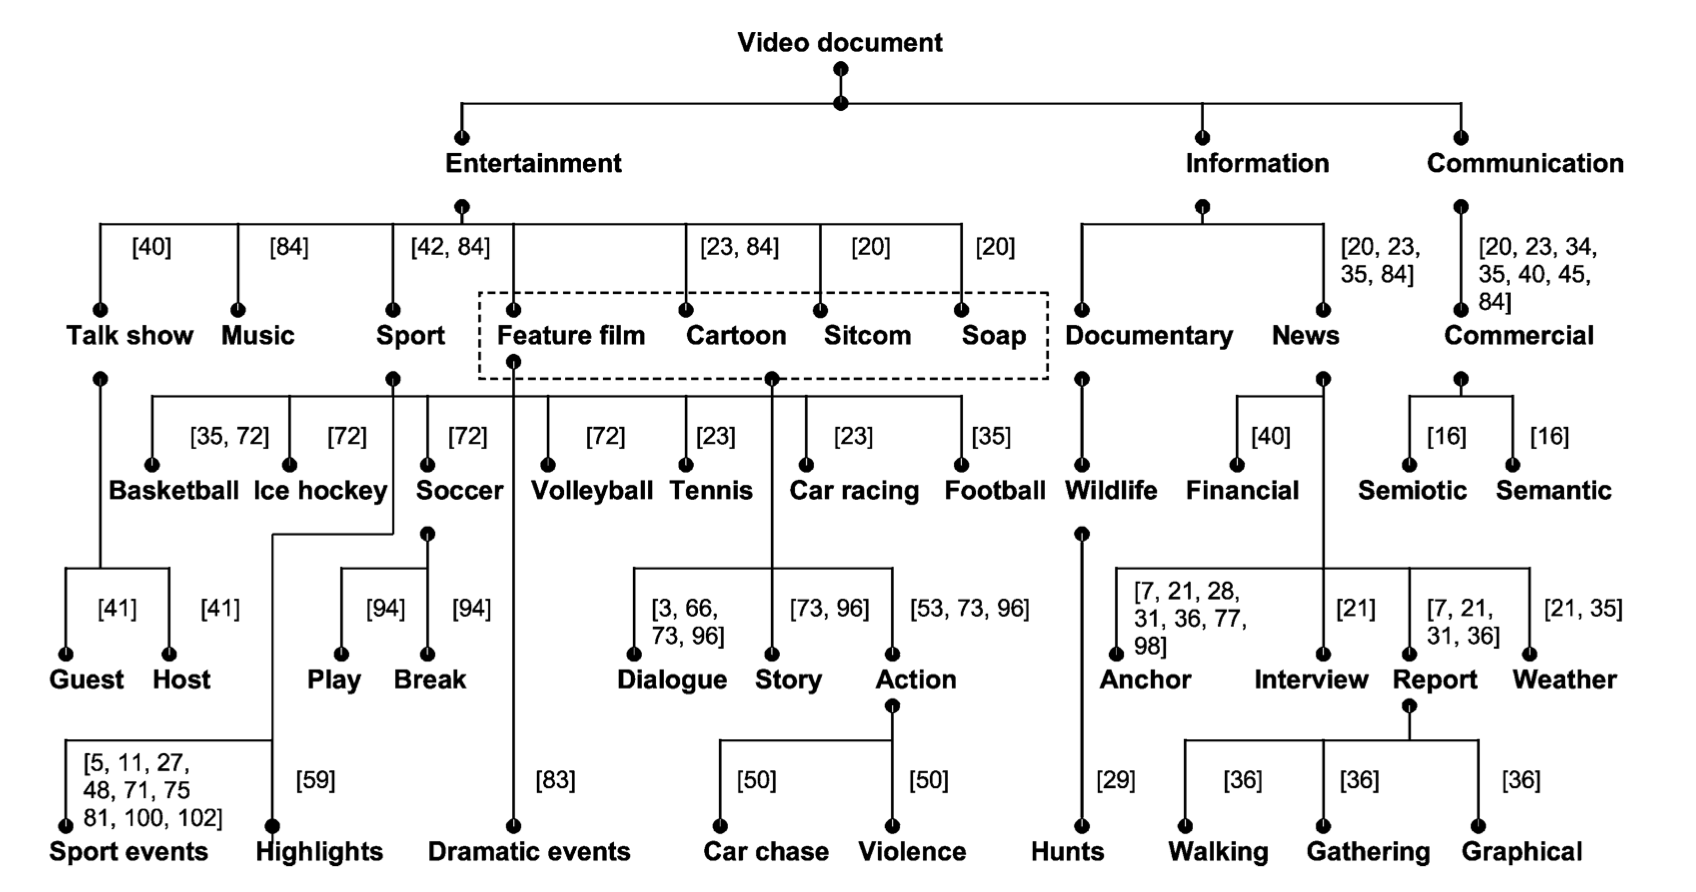 Multimodal Video Indexing: A Review of the State-of-the-art